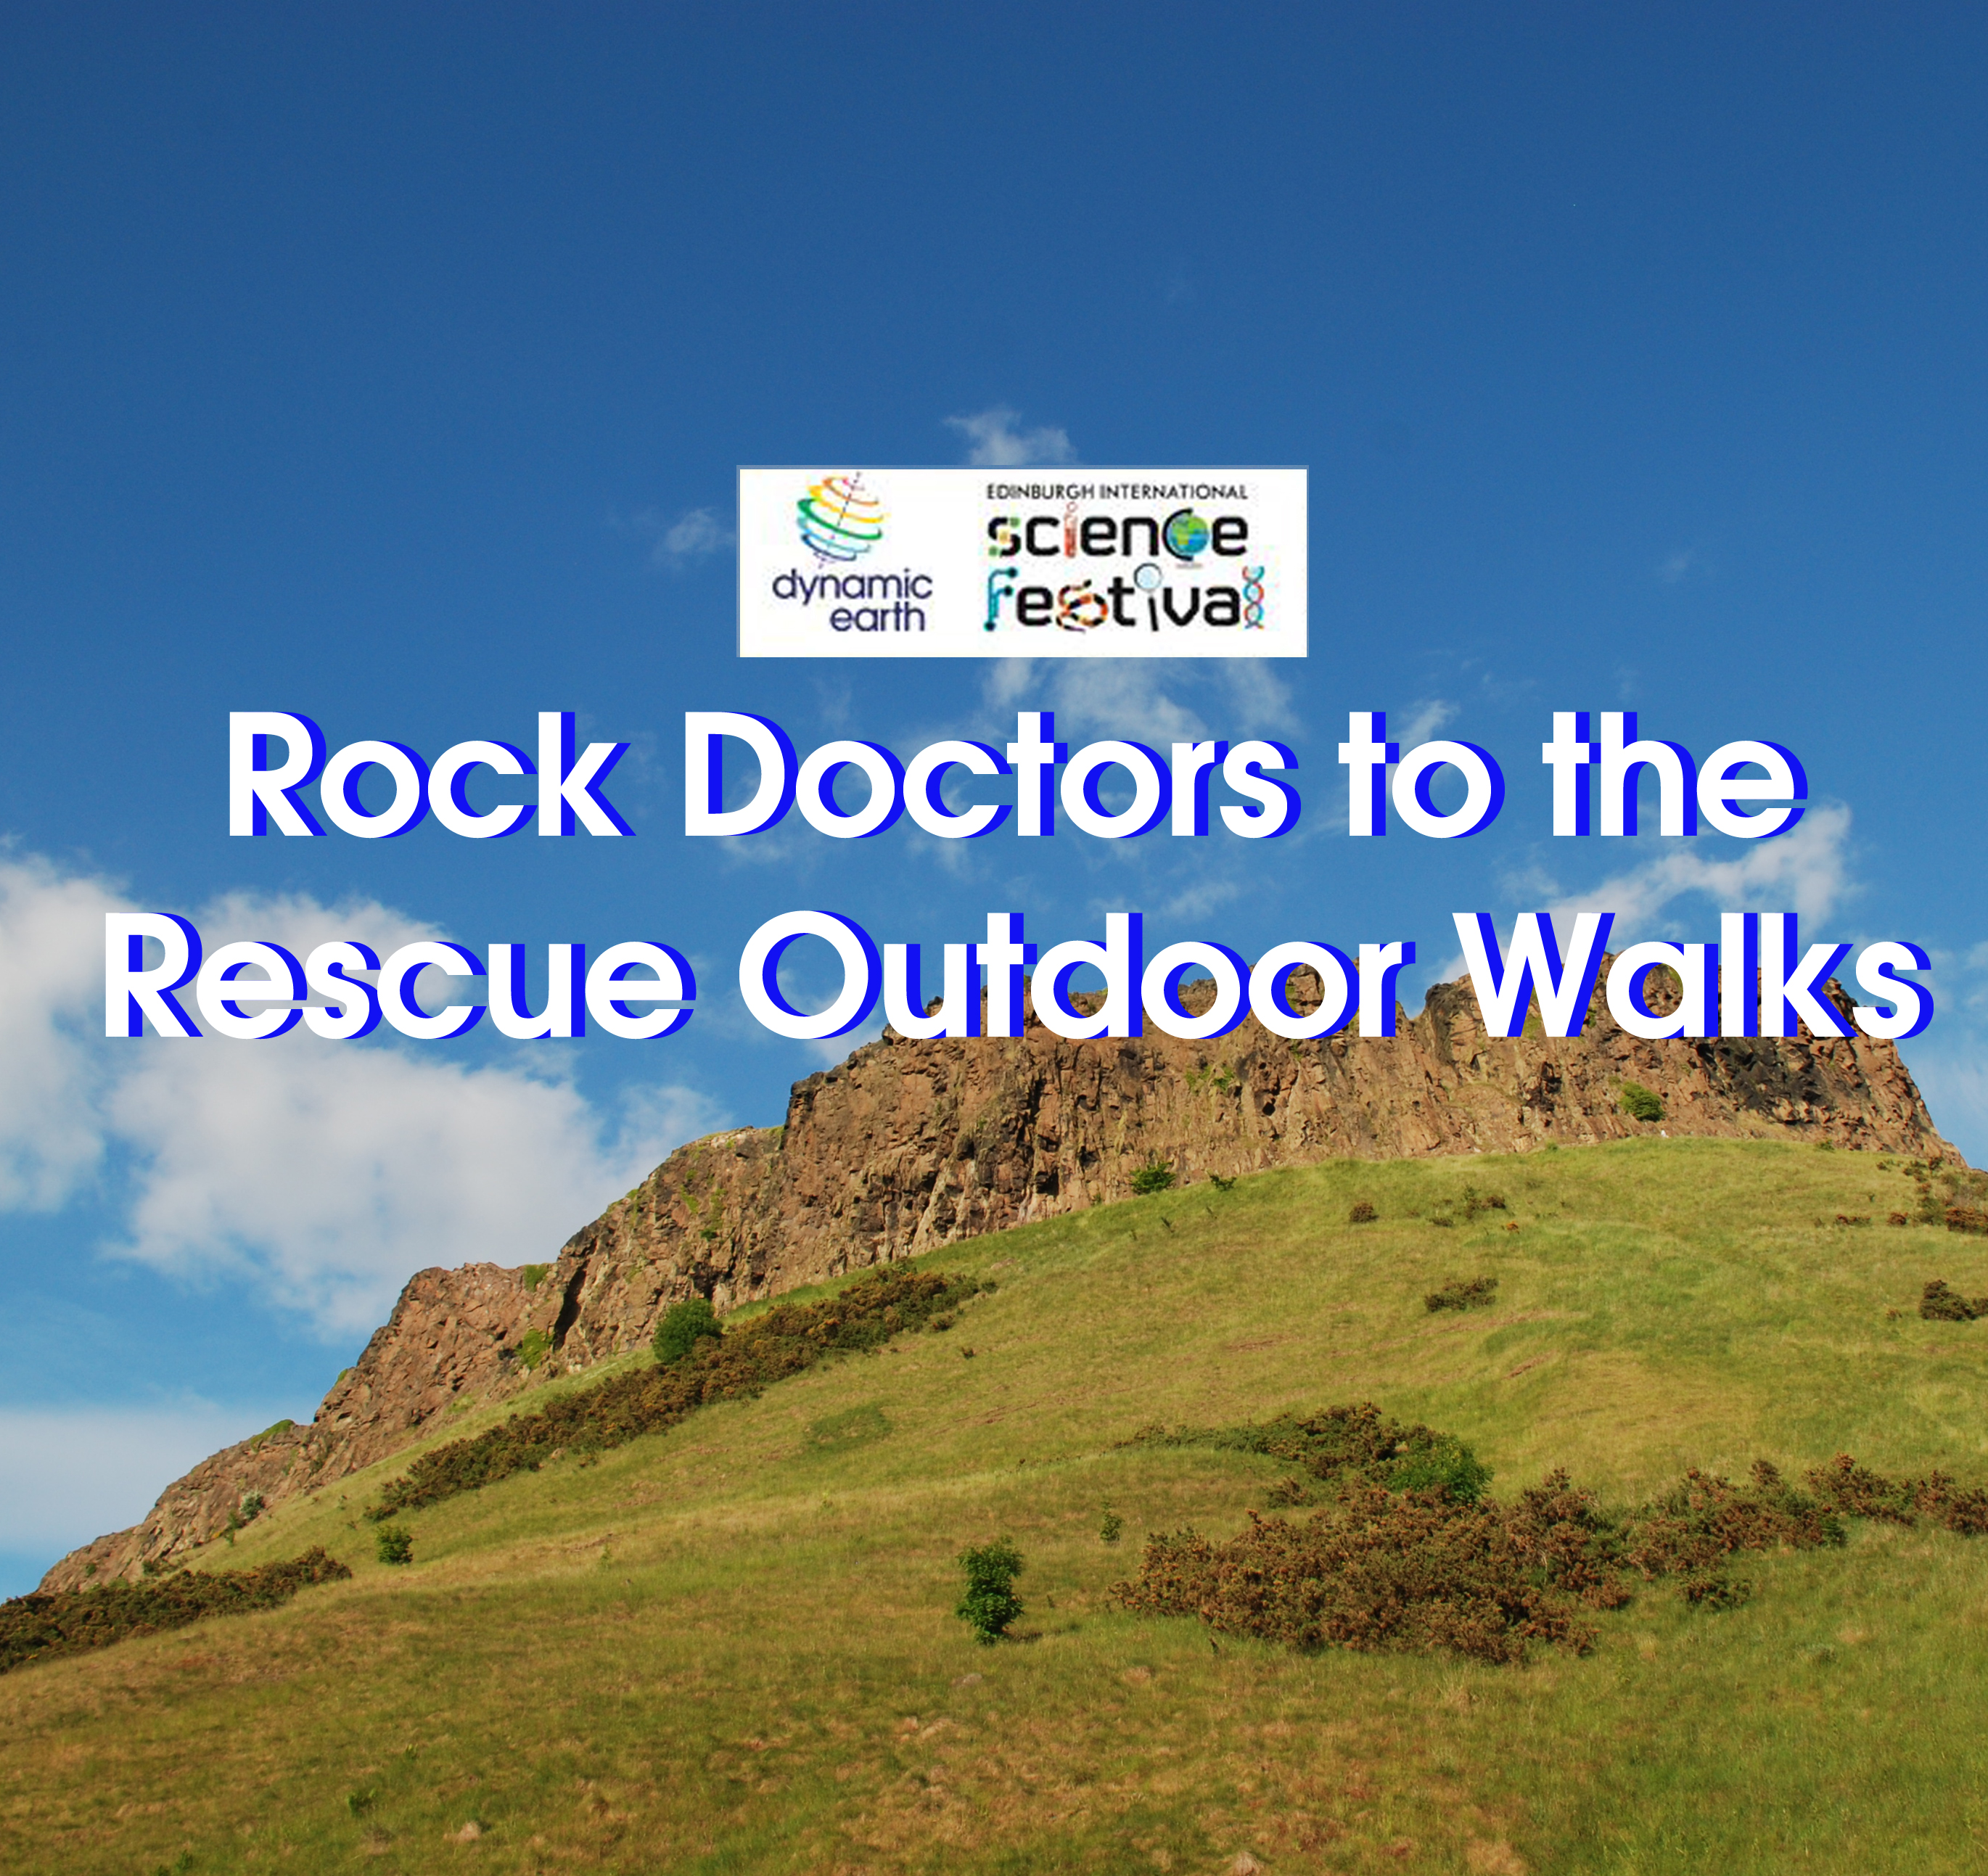 Rock Doctors to the Rescue: Meet the Experts Outdoor Walk